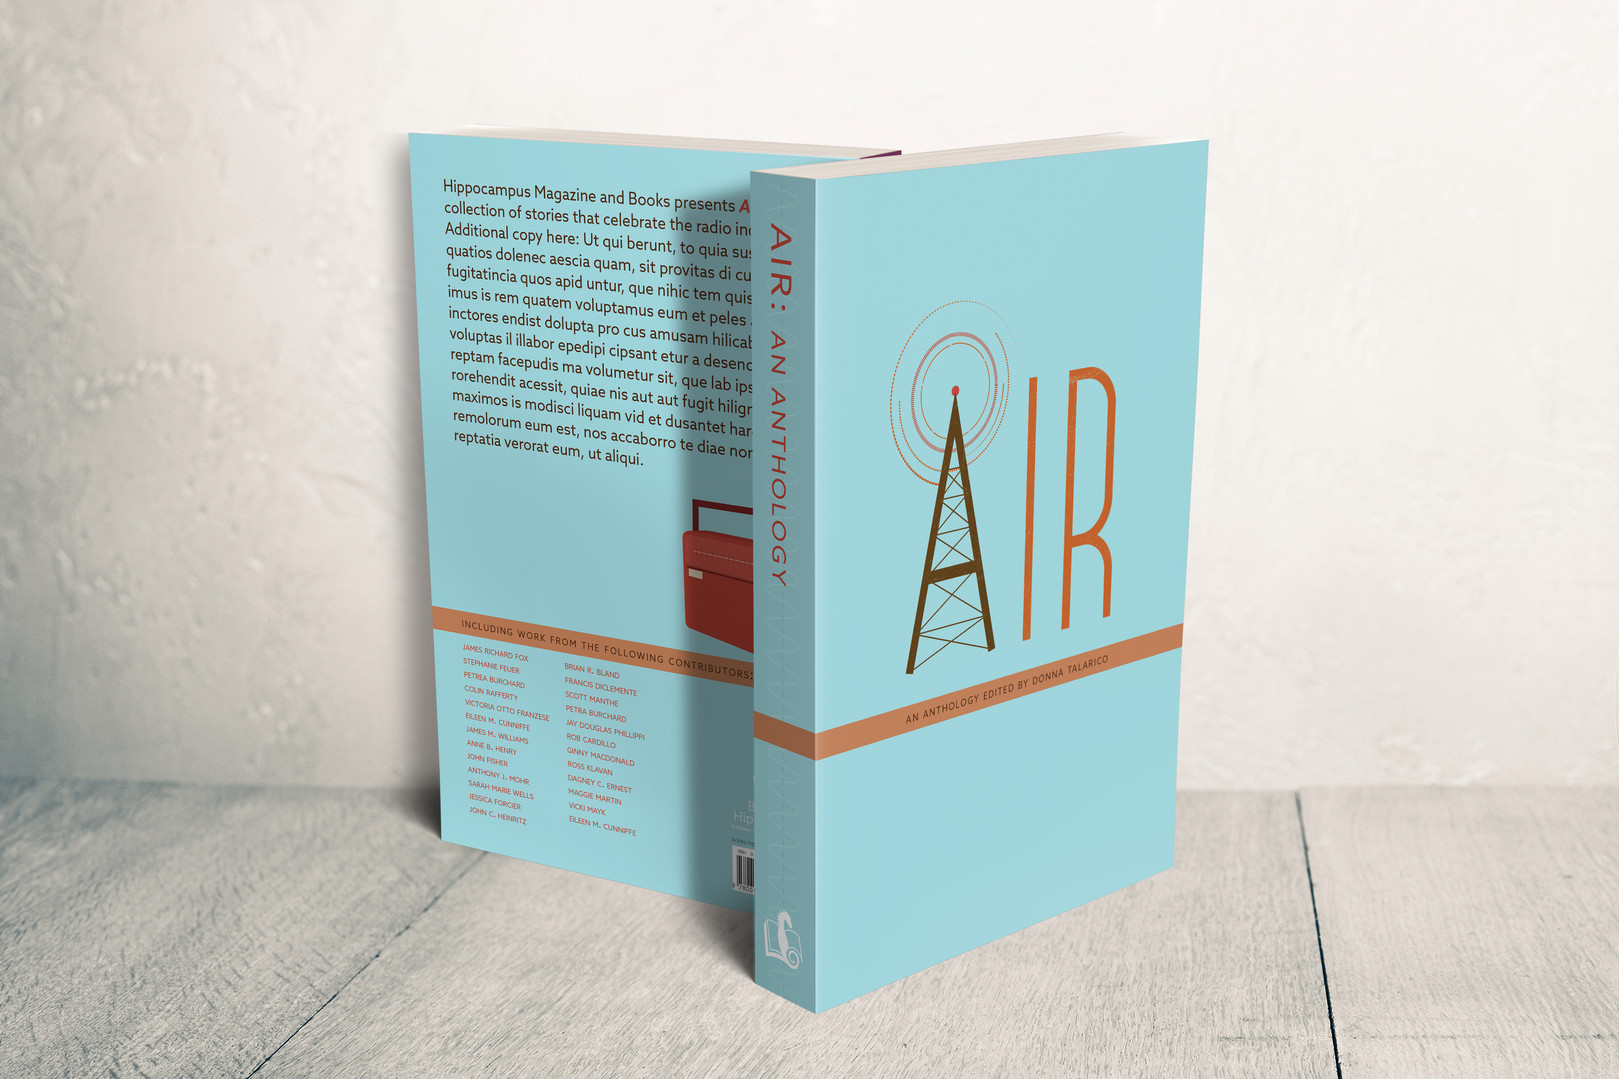 Book cover design for Hippocampus Magazine and Books' Air: An Anthology